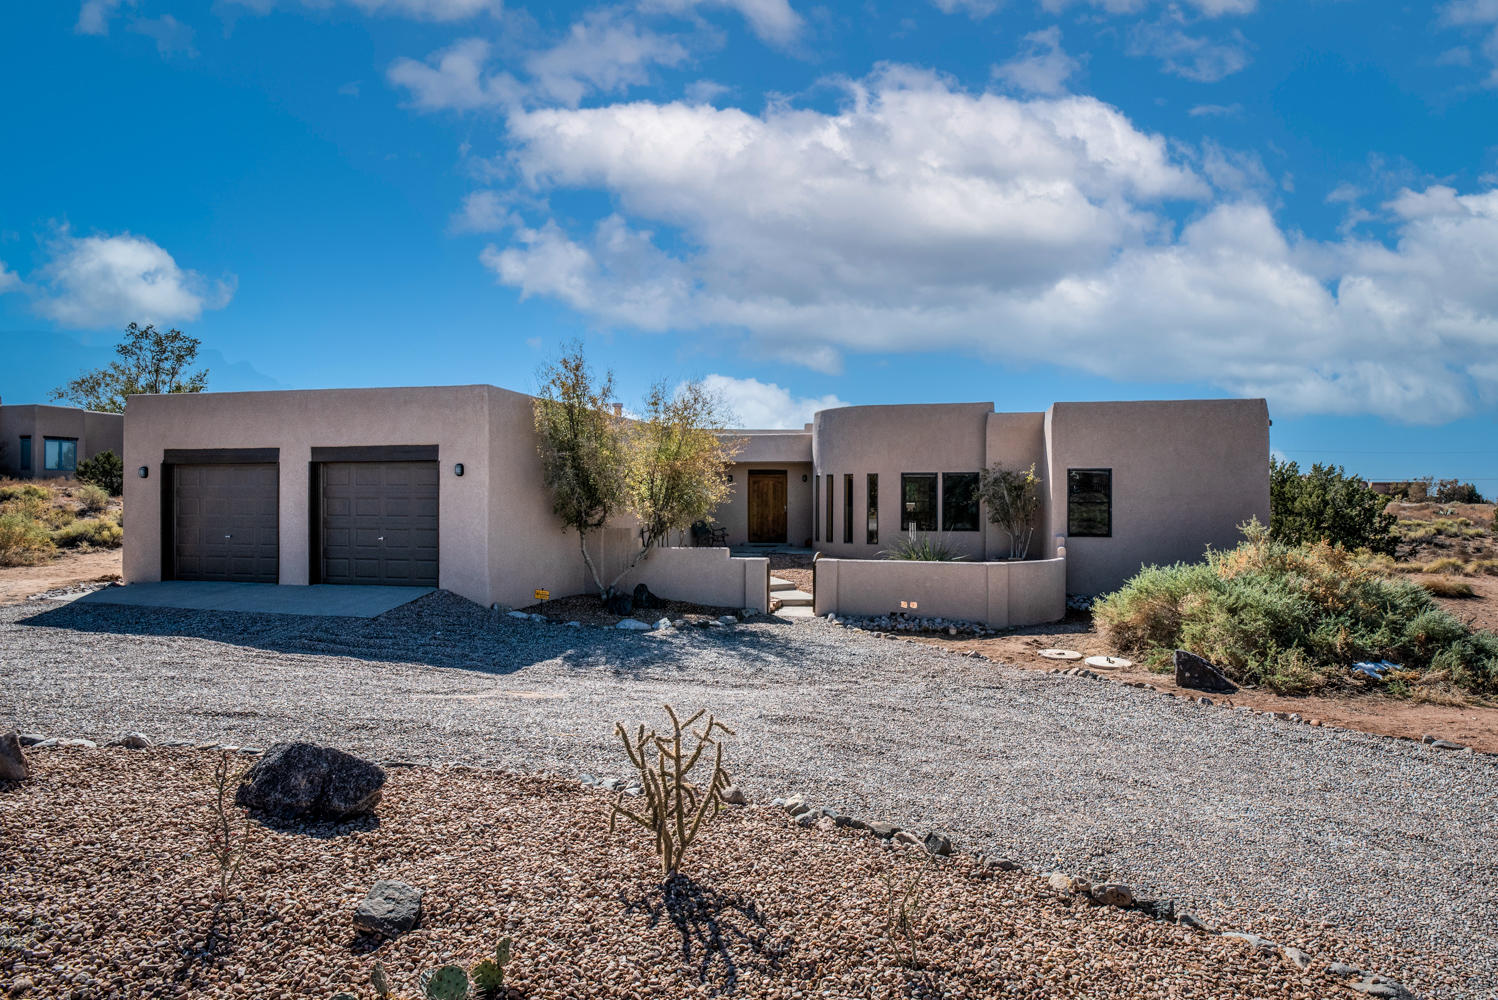 Single level custom southwest style home on 1.29 acre lot in Placitas. The beauty and open space of Placitas in a convenient location just over one mile from I-25 with easy access to both Albuquerque & Santa Fe. High ceilings & abundant light throughout. Well laid out for entertaining both summer and winter. Custom kitchen w/pecan cabinetry, double oven, gas cooktop, island and informal dining area. Kitchen, formal dining room and master bedroom all access backyard and patio with ever-changing views of the Sandia mountains.  Thoughtful floorplan with master suite, including attached office/nursery, separated from the two ensuite bedrooms. Comfort not a concern with in-floor radiant heat, two newer (2 years) refrigerated air units,and 2 fireplaces. New roof, stucco, carpet. OPEN 2-4 SUNDAY